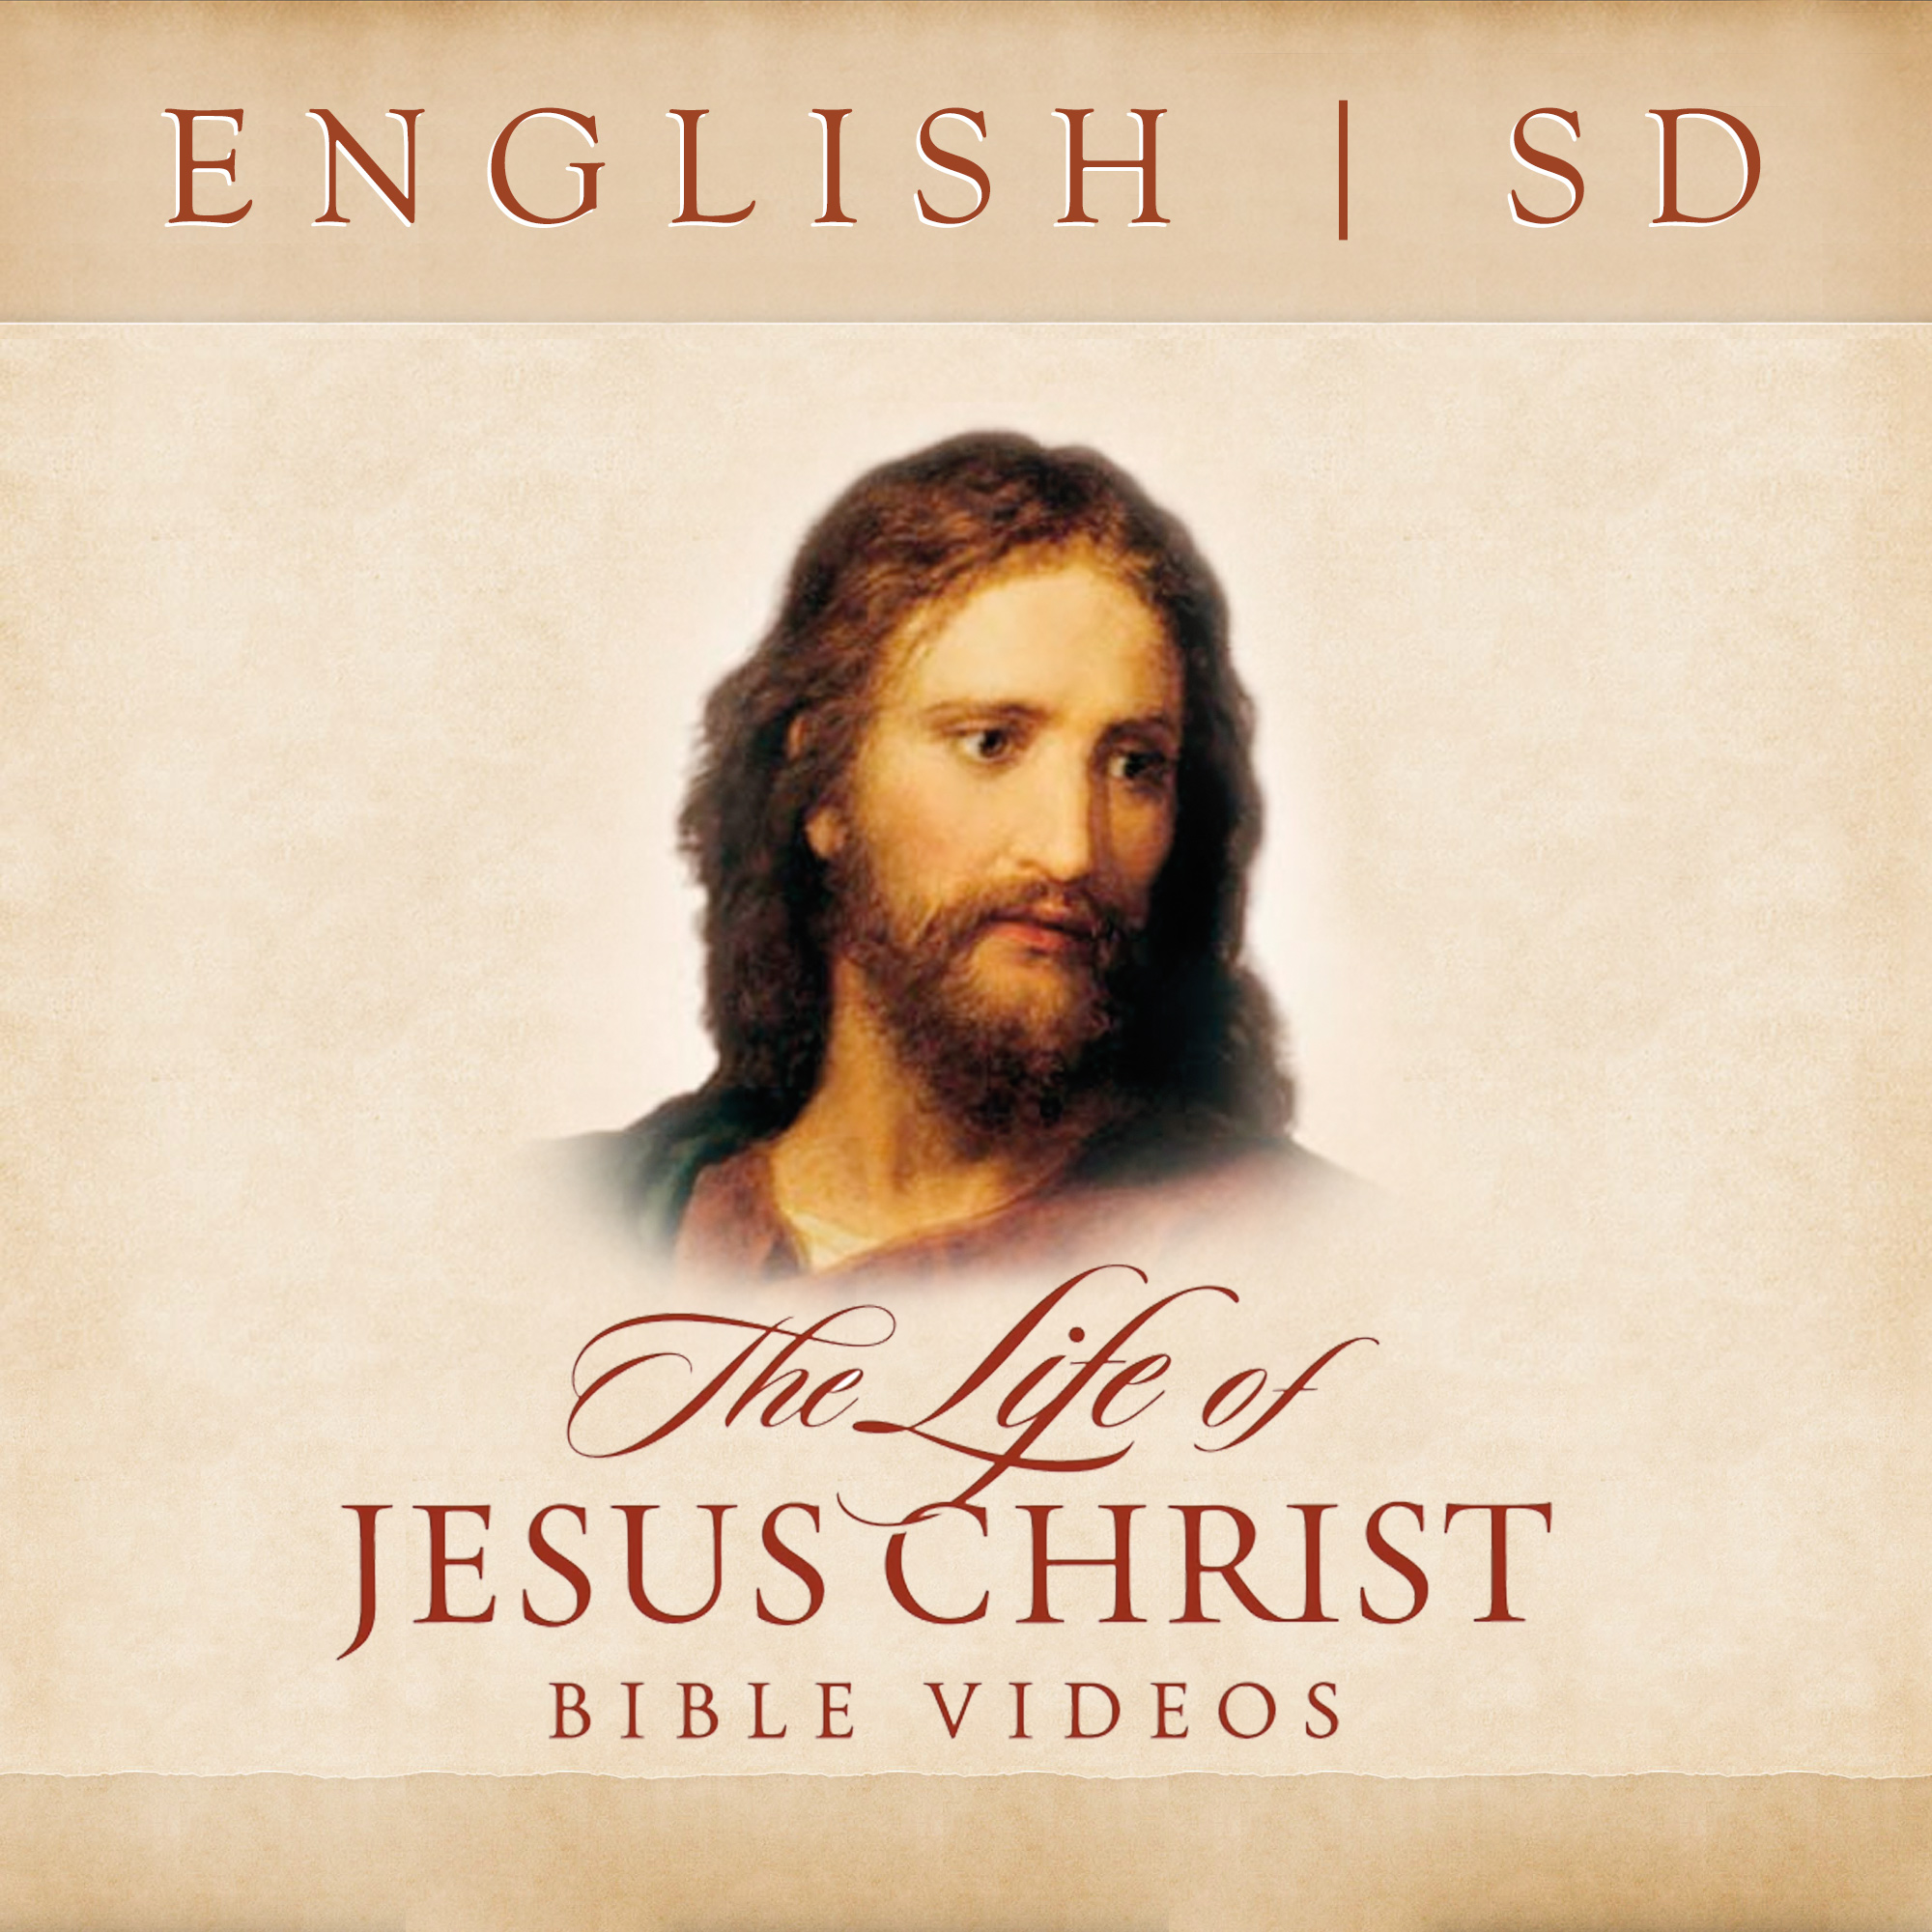 The Life of Jesus Christ—Bible Videos | SD | ENGLISH